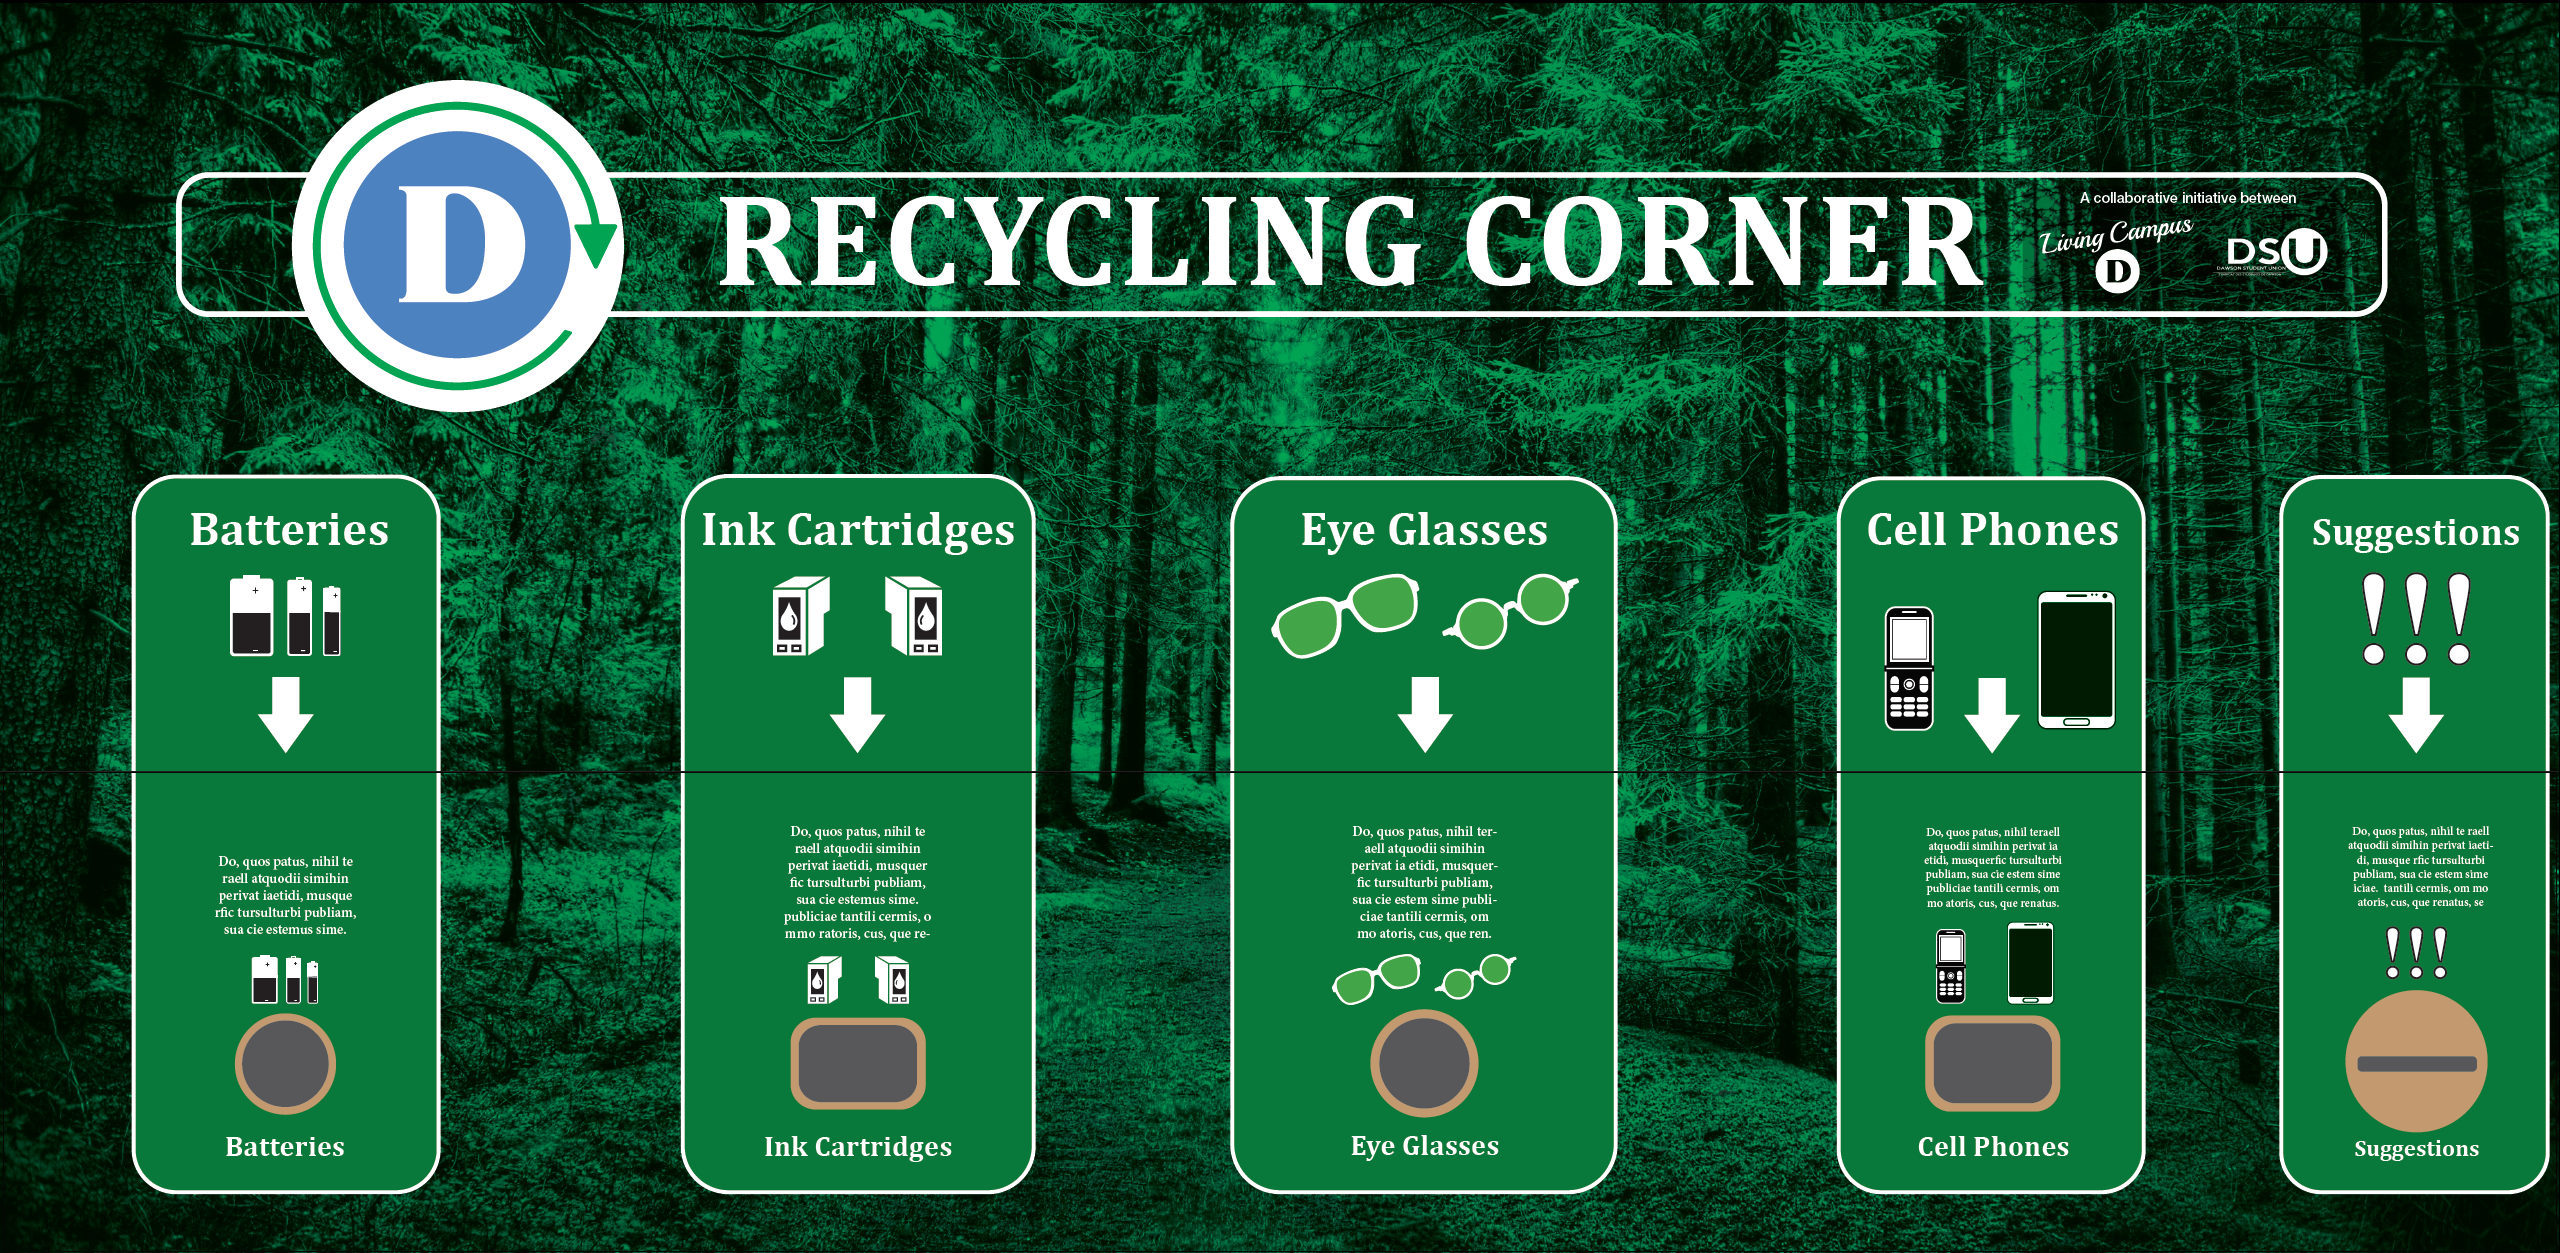 Signage layout of Recycling Corner